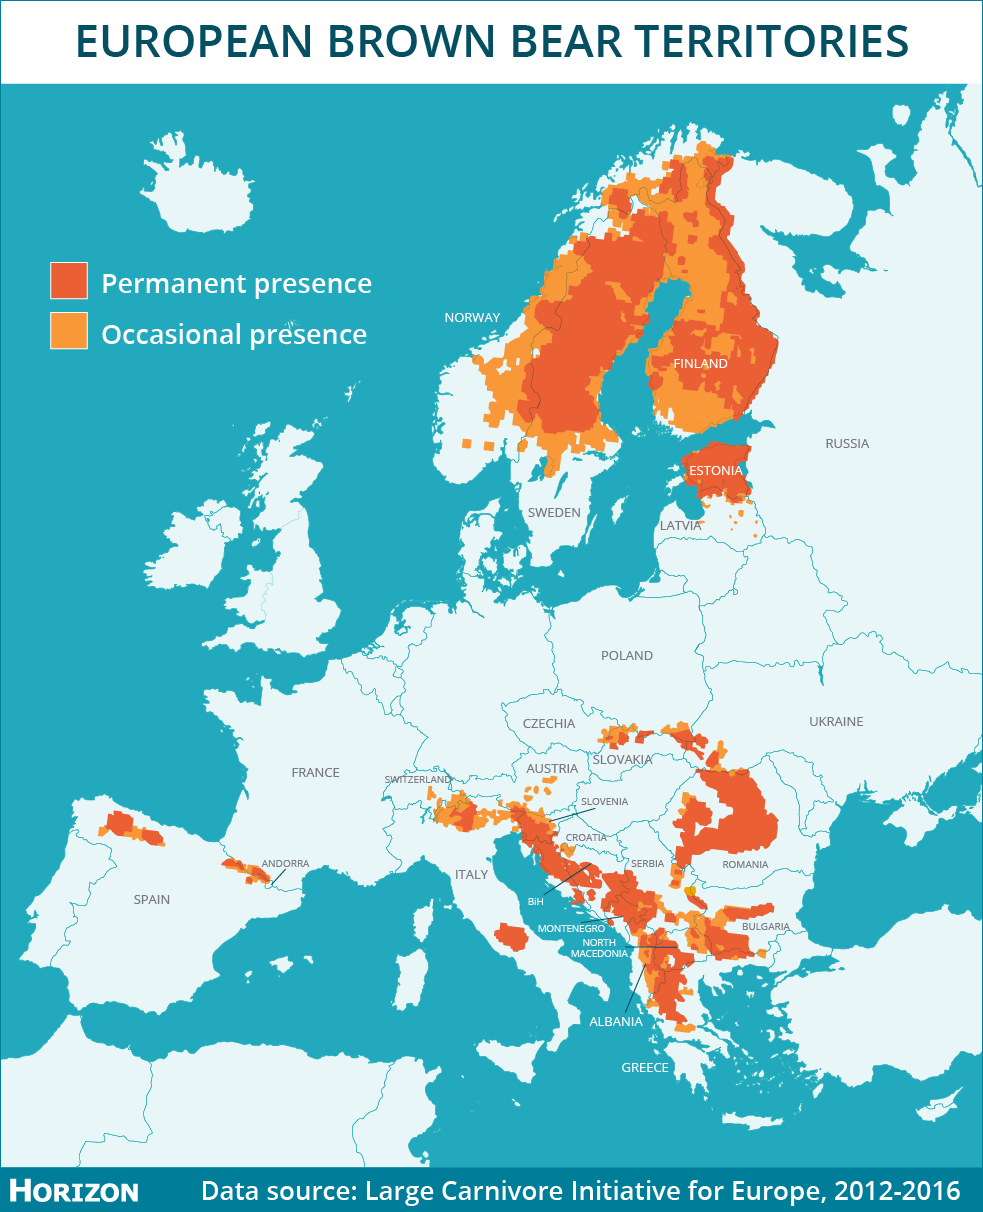 There are more than 17,000 bears living in Europe, according to the IUCN's Large Carnivore Initiative for Europe, 44% of which live in the Carpathian mountains, which span Romania, Poland, Slovakia and Serbia. Image credit - Horizon